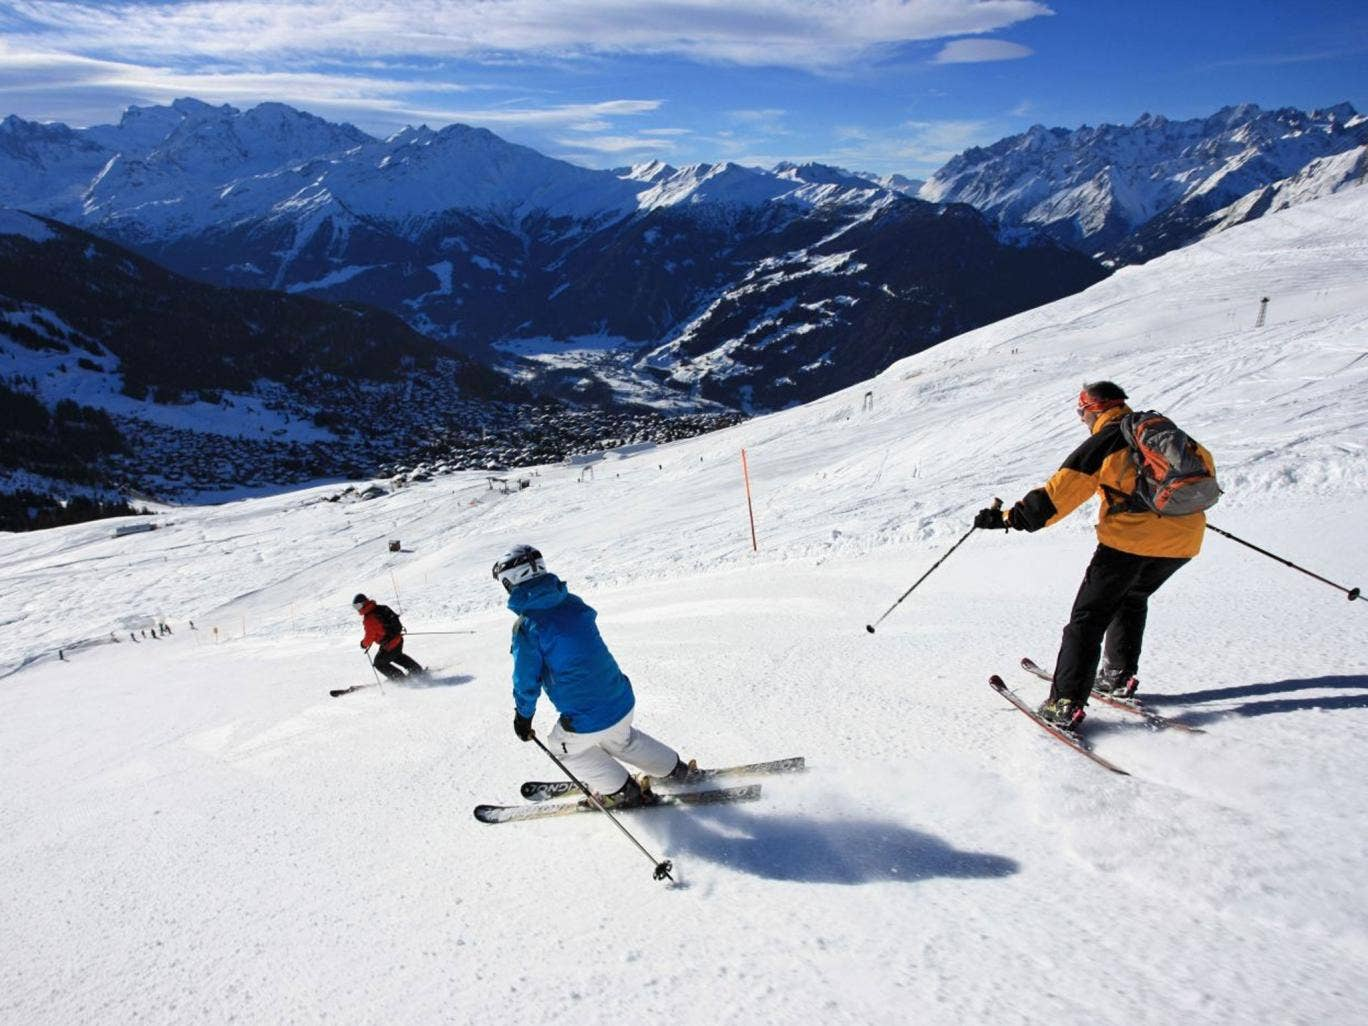 Out of the blue: Sunny skies have come to Verbier in Switzerland